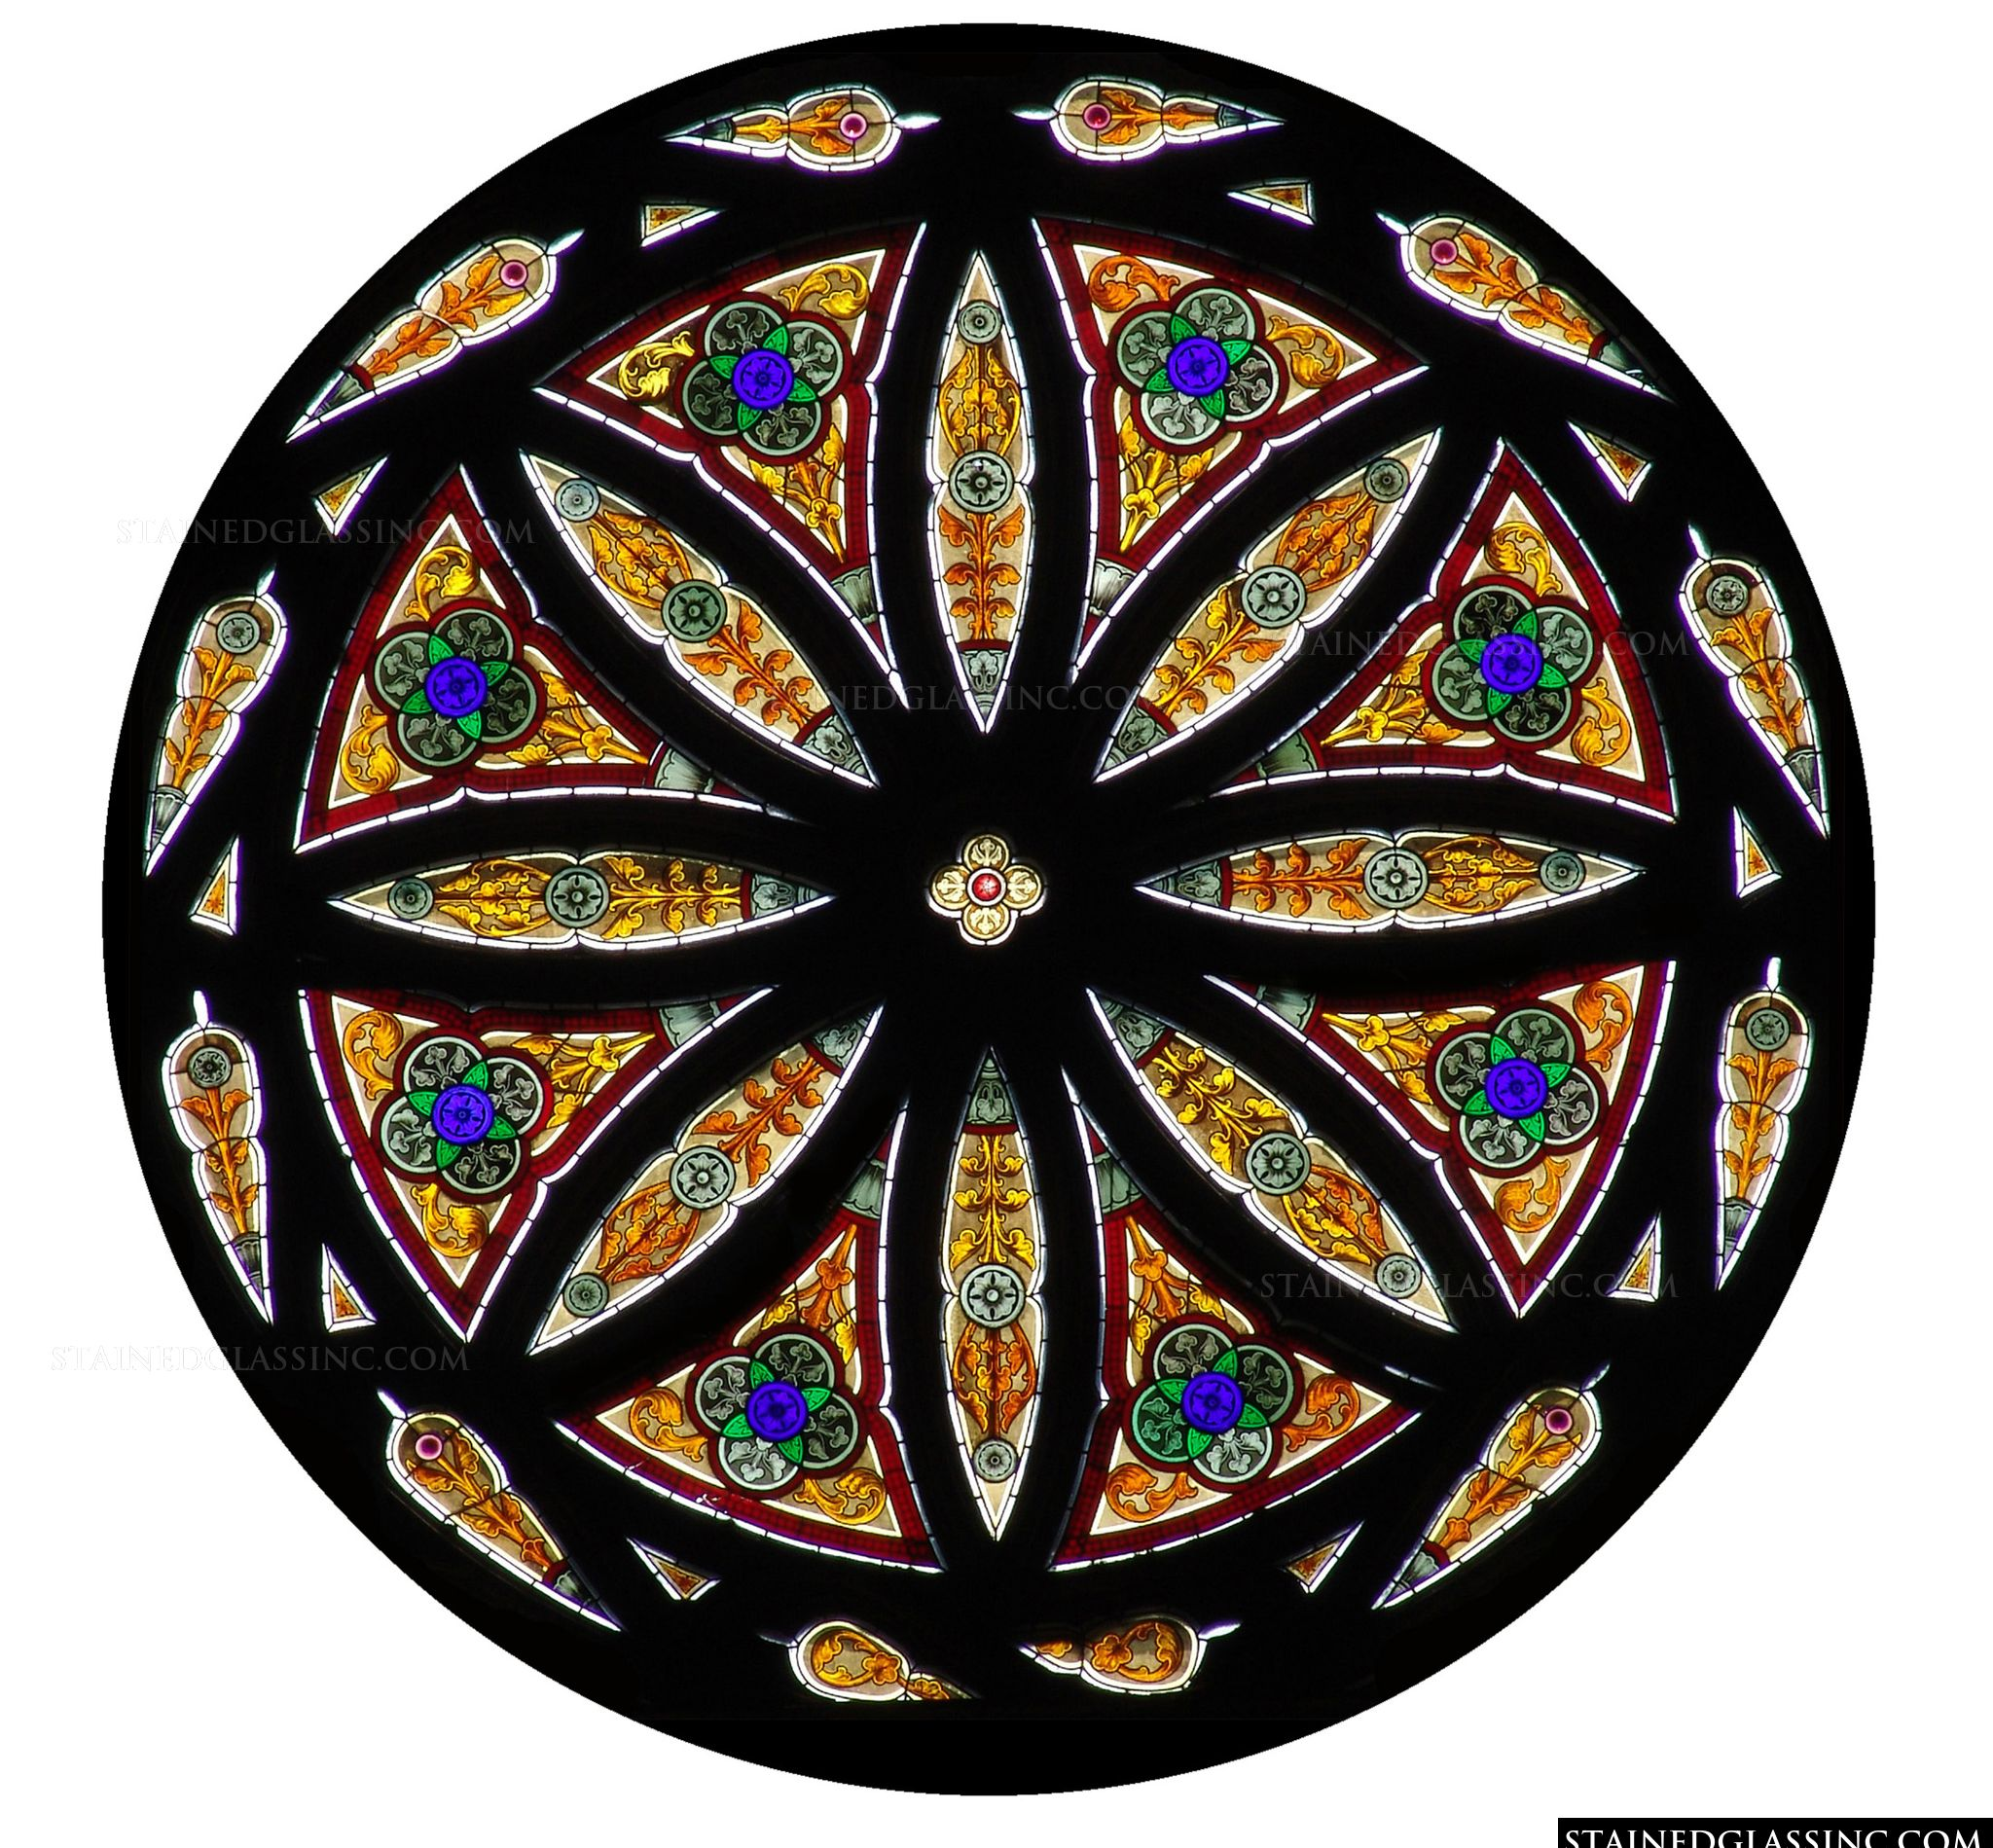 Quot Circular Geometric Window Quot Stained Glass Window